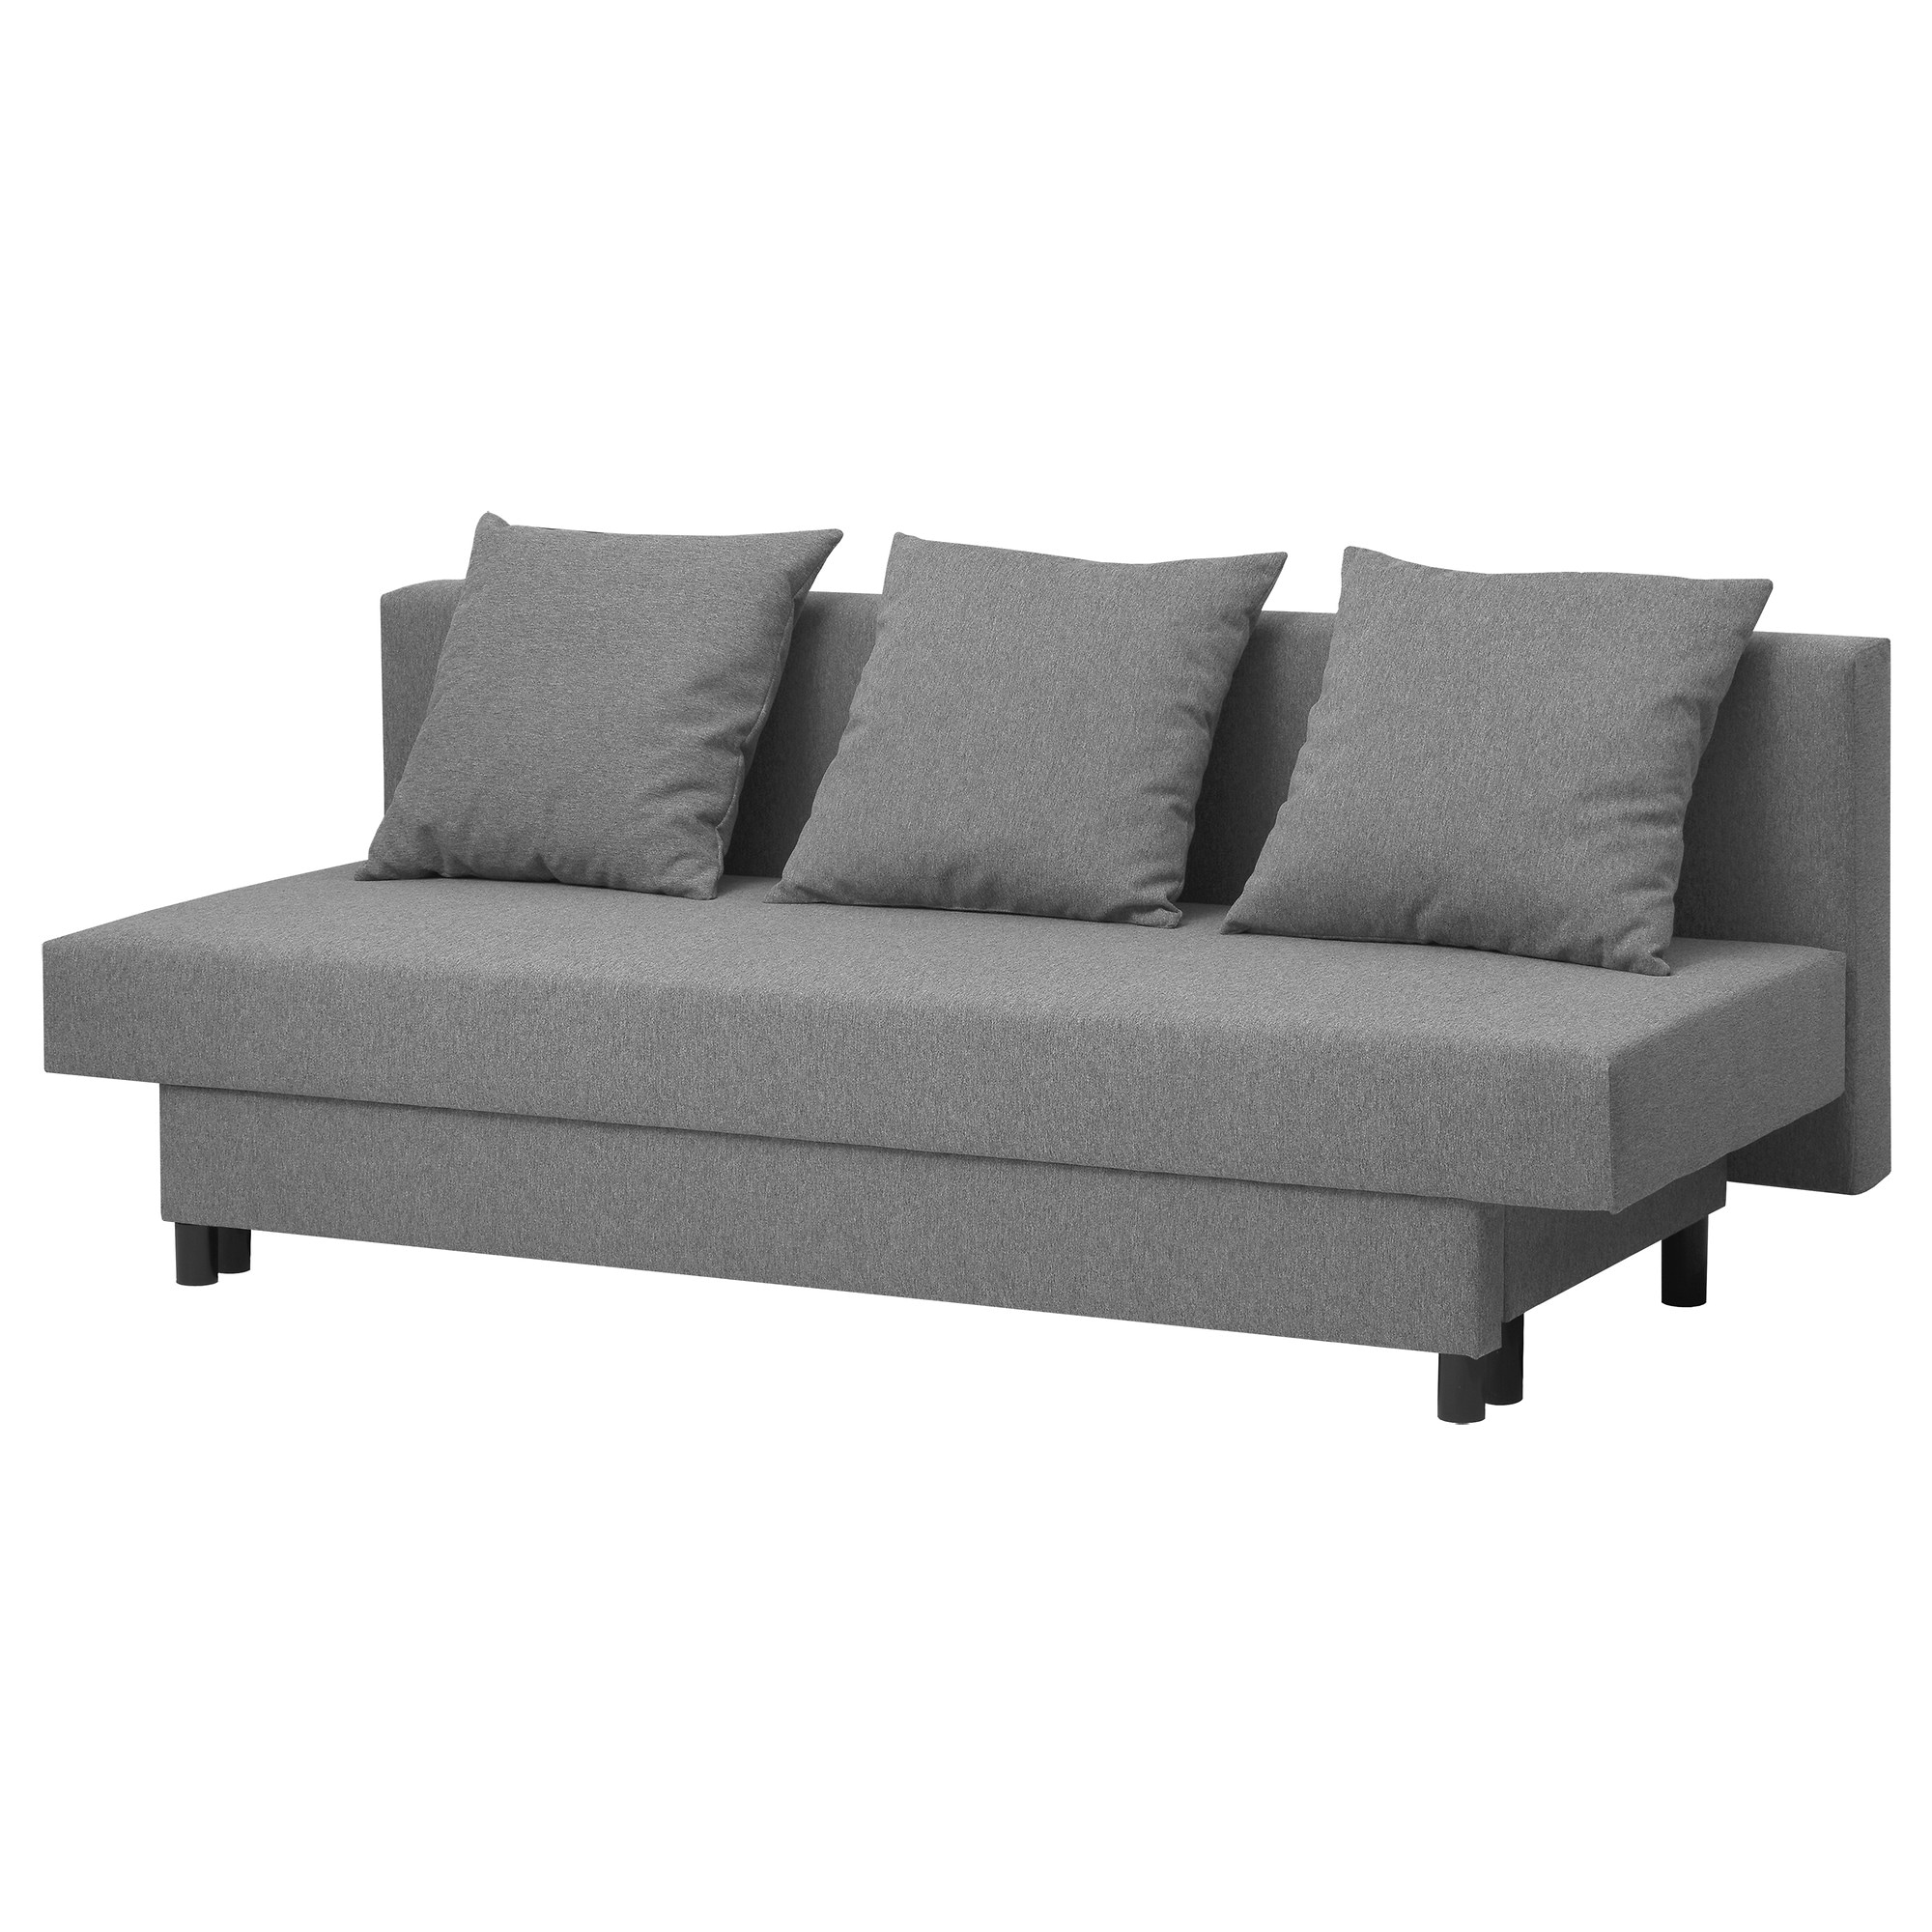 ASARUM 3er Bettsofa   IKEA